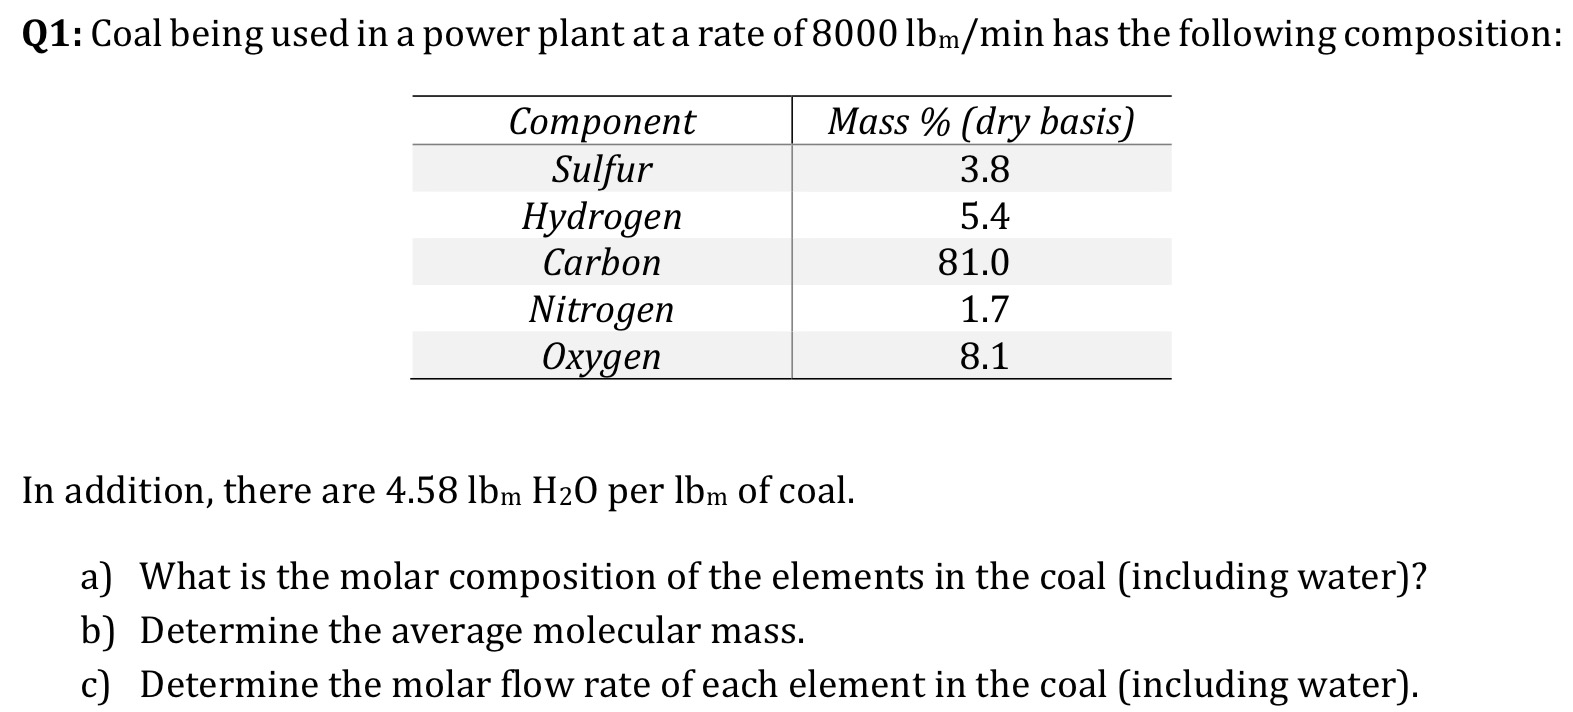 Q1: Coal being used in a power plant at a rate of 8000 lbm/min has the following composition: Mass % (dry basis) Соmponent Sulfur Hydrogen Carbon 3.8 5.4 81.0 Nitrogen Охудеп 1.7 8.1 In addition, there are 4.58 1lbm H20 per lbm of coal. a) What is the molar composition of the elements in the coal (including water)? b) Determine the c) Determine the molar flow rate of each element in the coal (including water) molecular mass. average